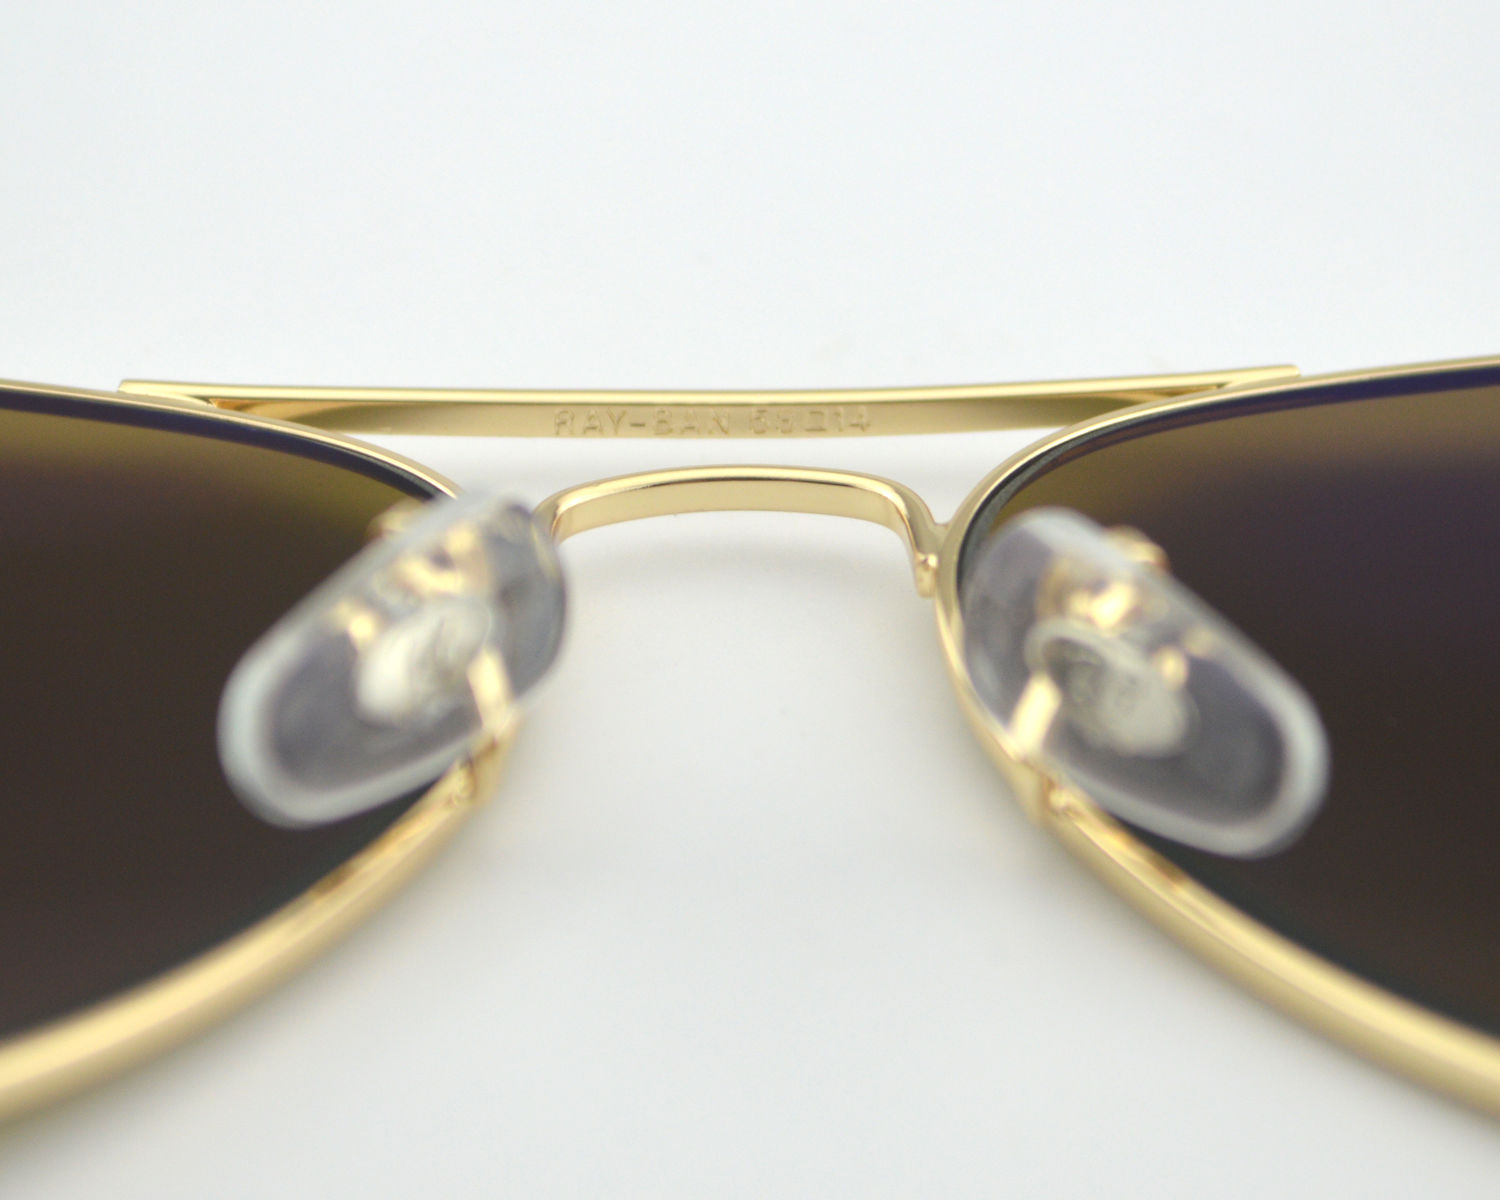 09f890a4d25 Ray Ban RB3025 Aviator Classic 001 57 Gold Polarized Brown Classic Glass  Lens Unisex Sunglasses 58mm